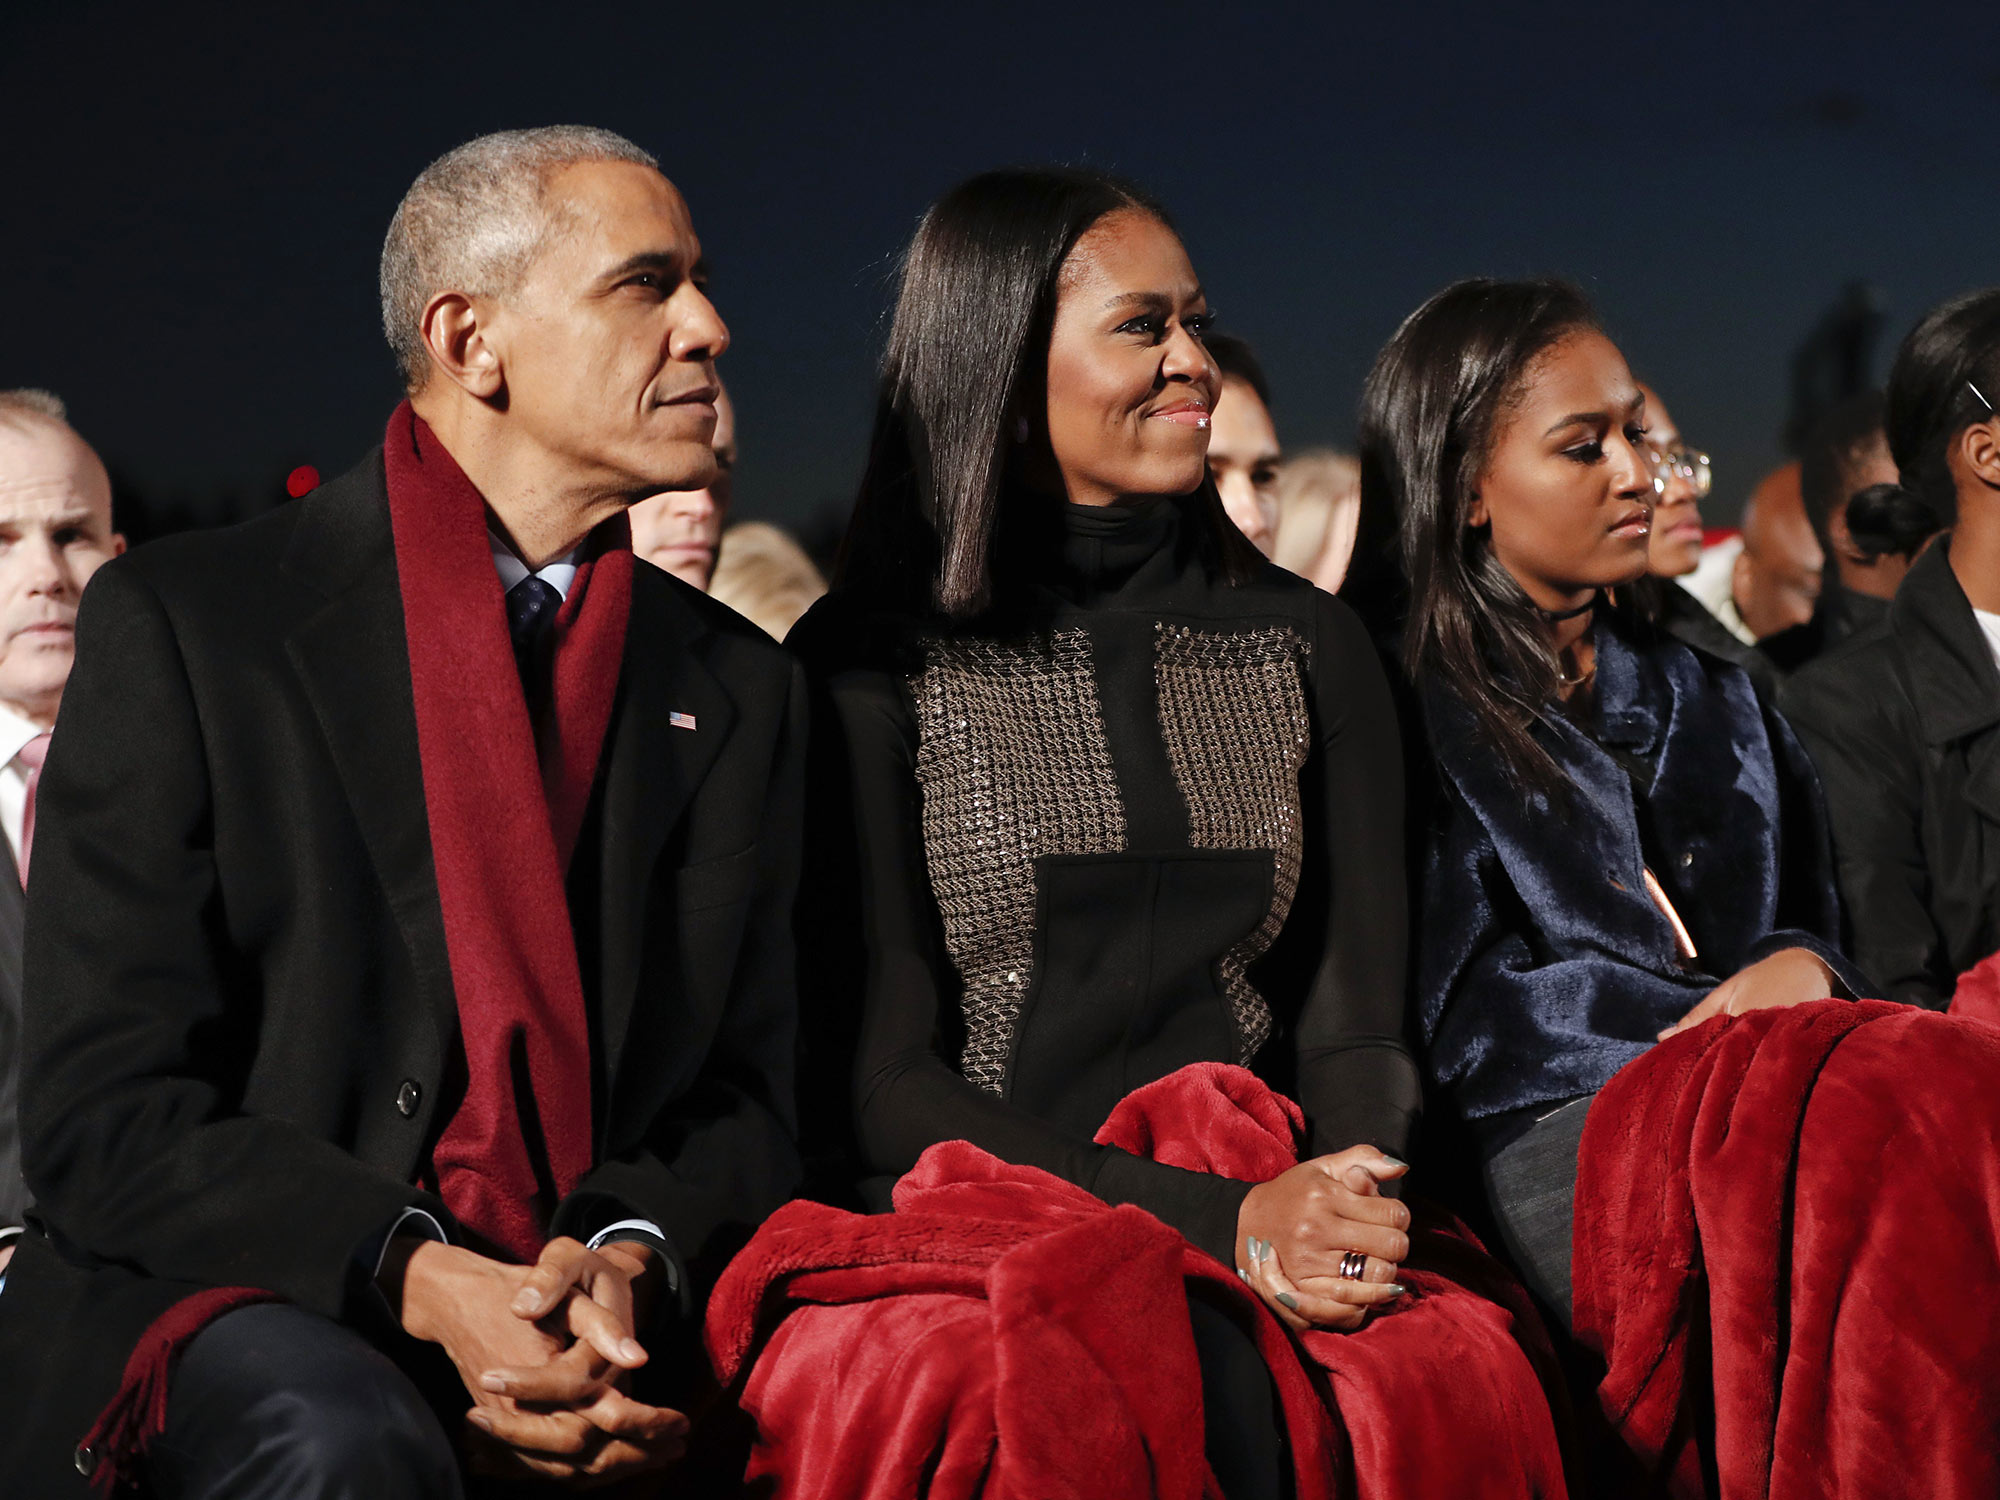 President Barack Obama, sits with first lady Michelle Obama, center, and their daughter Sasha, right, to watch the musical performances at the lighting the 2016 National Christmas Tree ceremony at the Ellipse near the White House in Washington, Thursday, Dec. 1, 2016. (AP Photo/Pablo Martinez Monsivais)